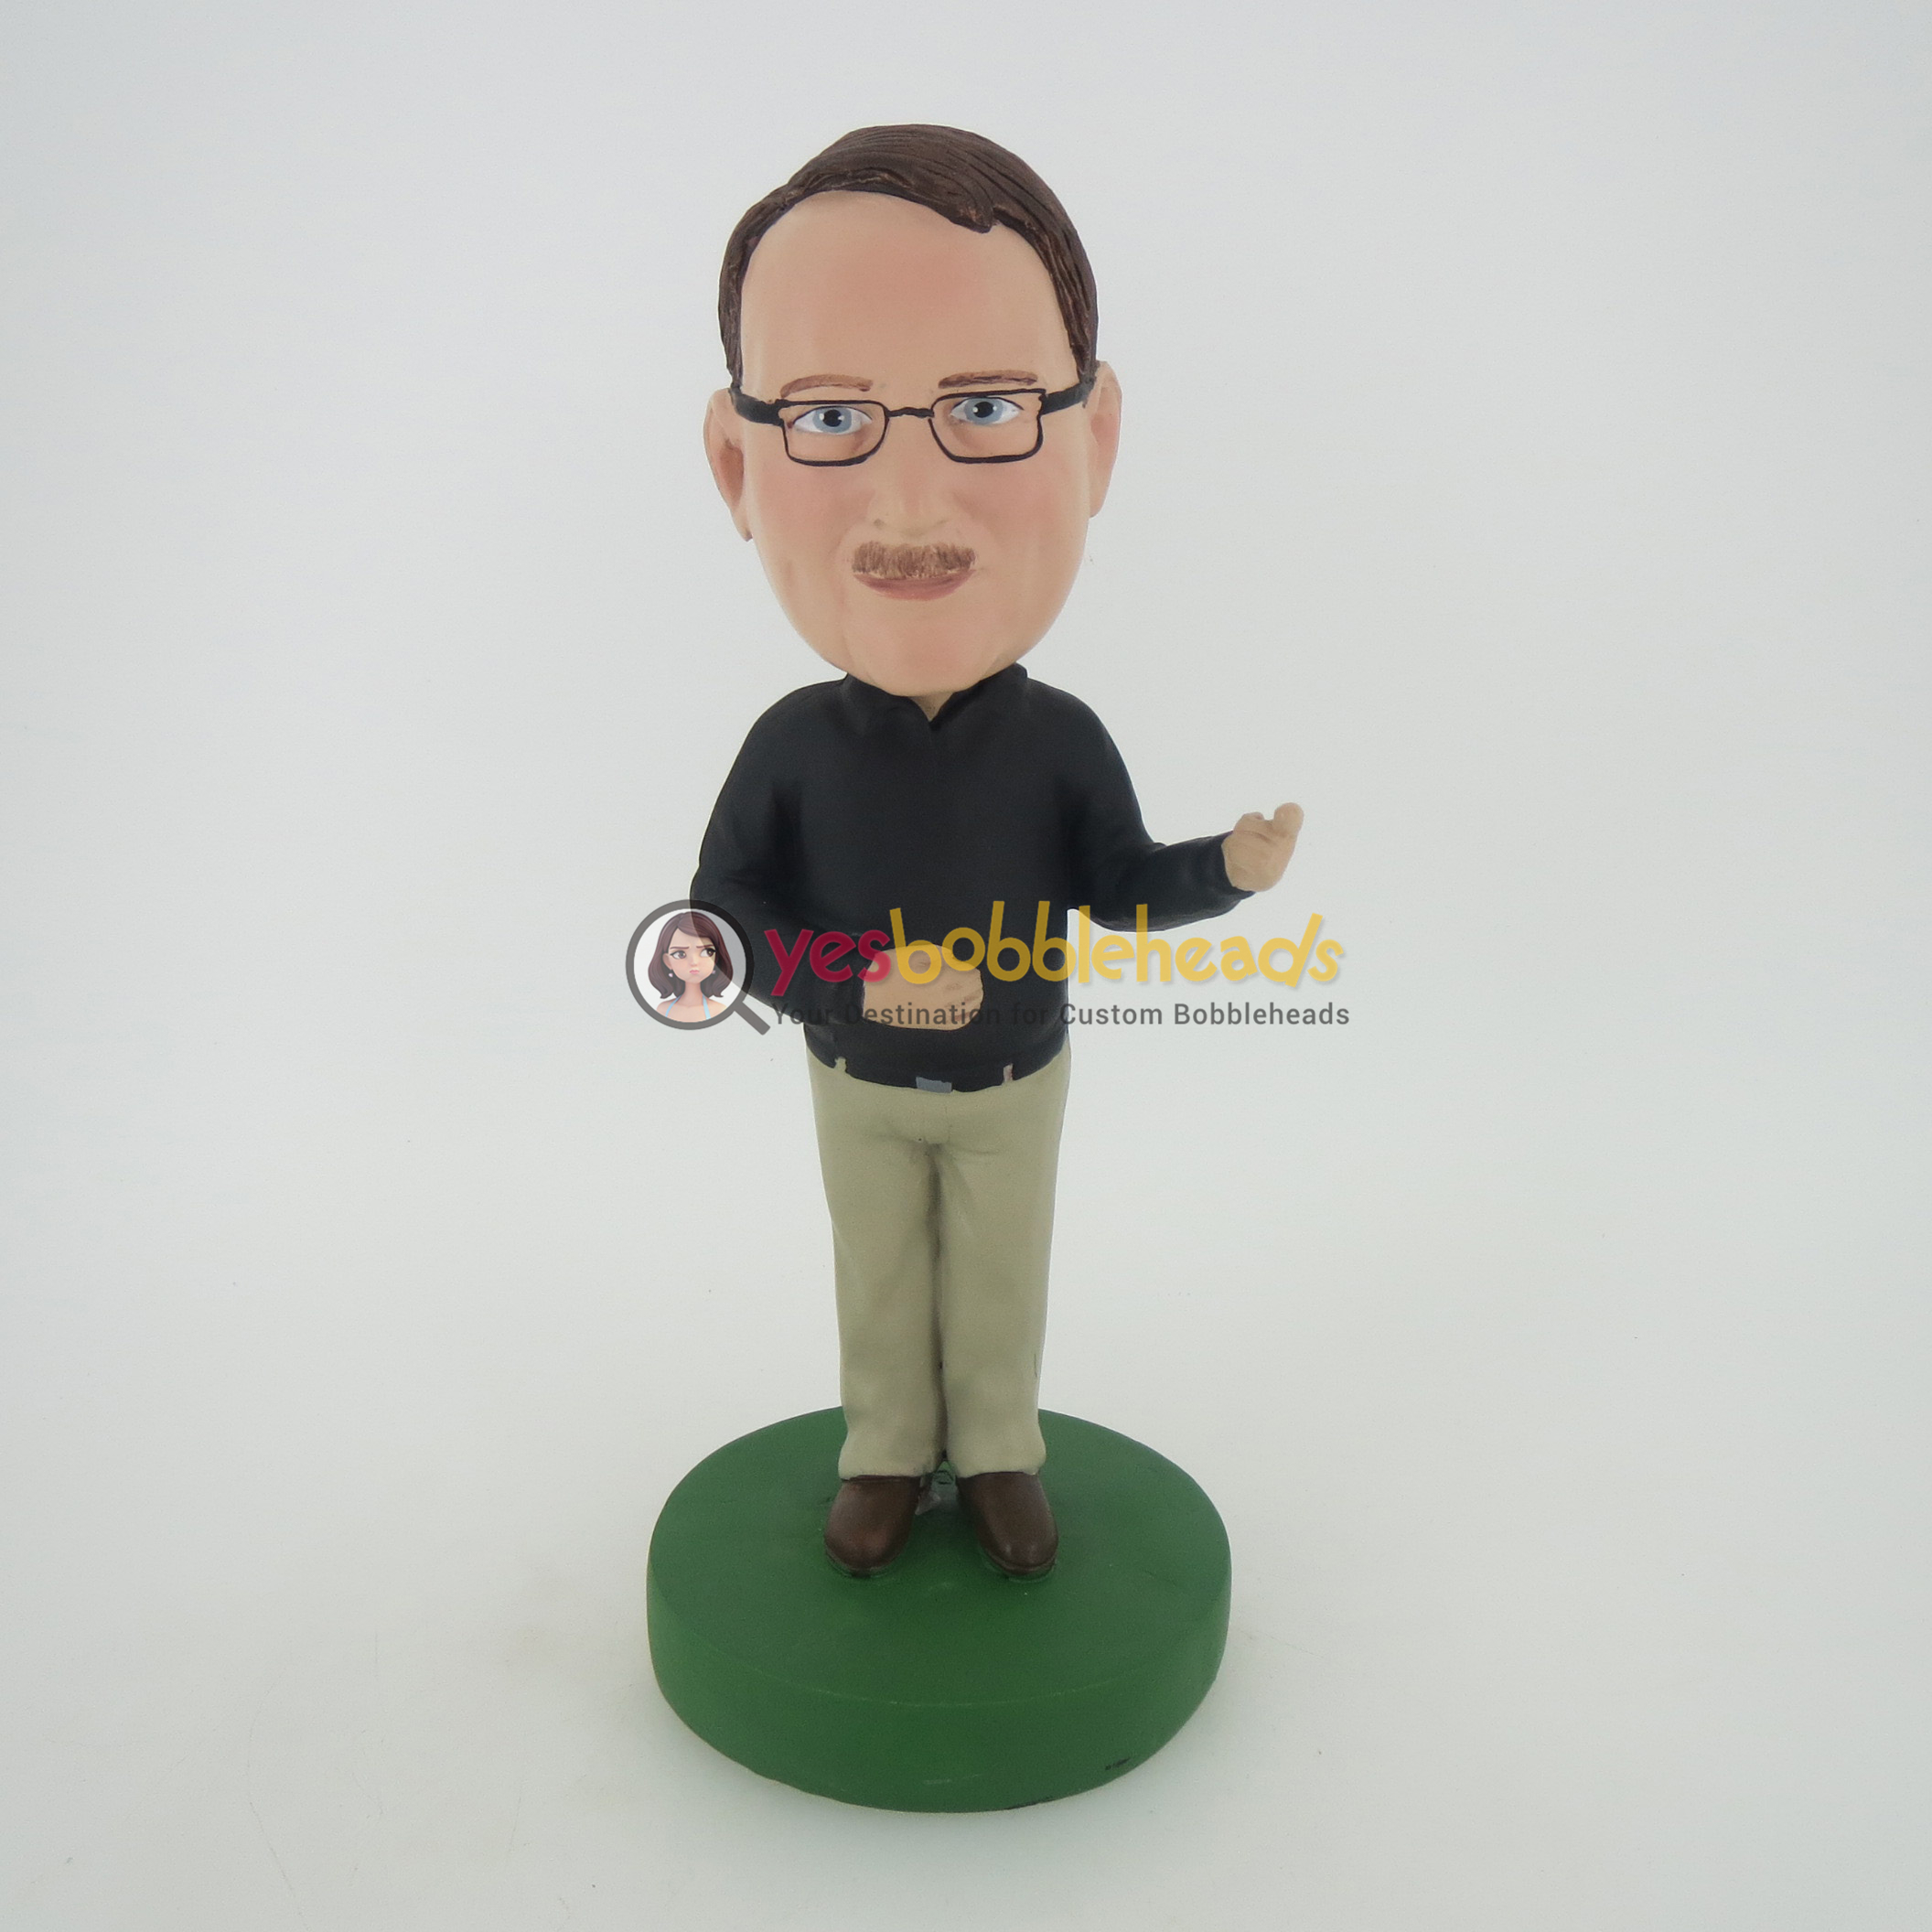 Picture of Custom Bobblehead Doll: Kind Man Welcoming You